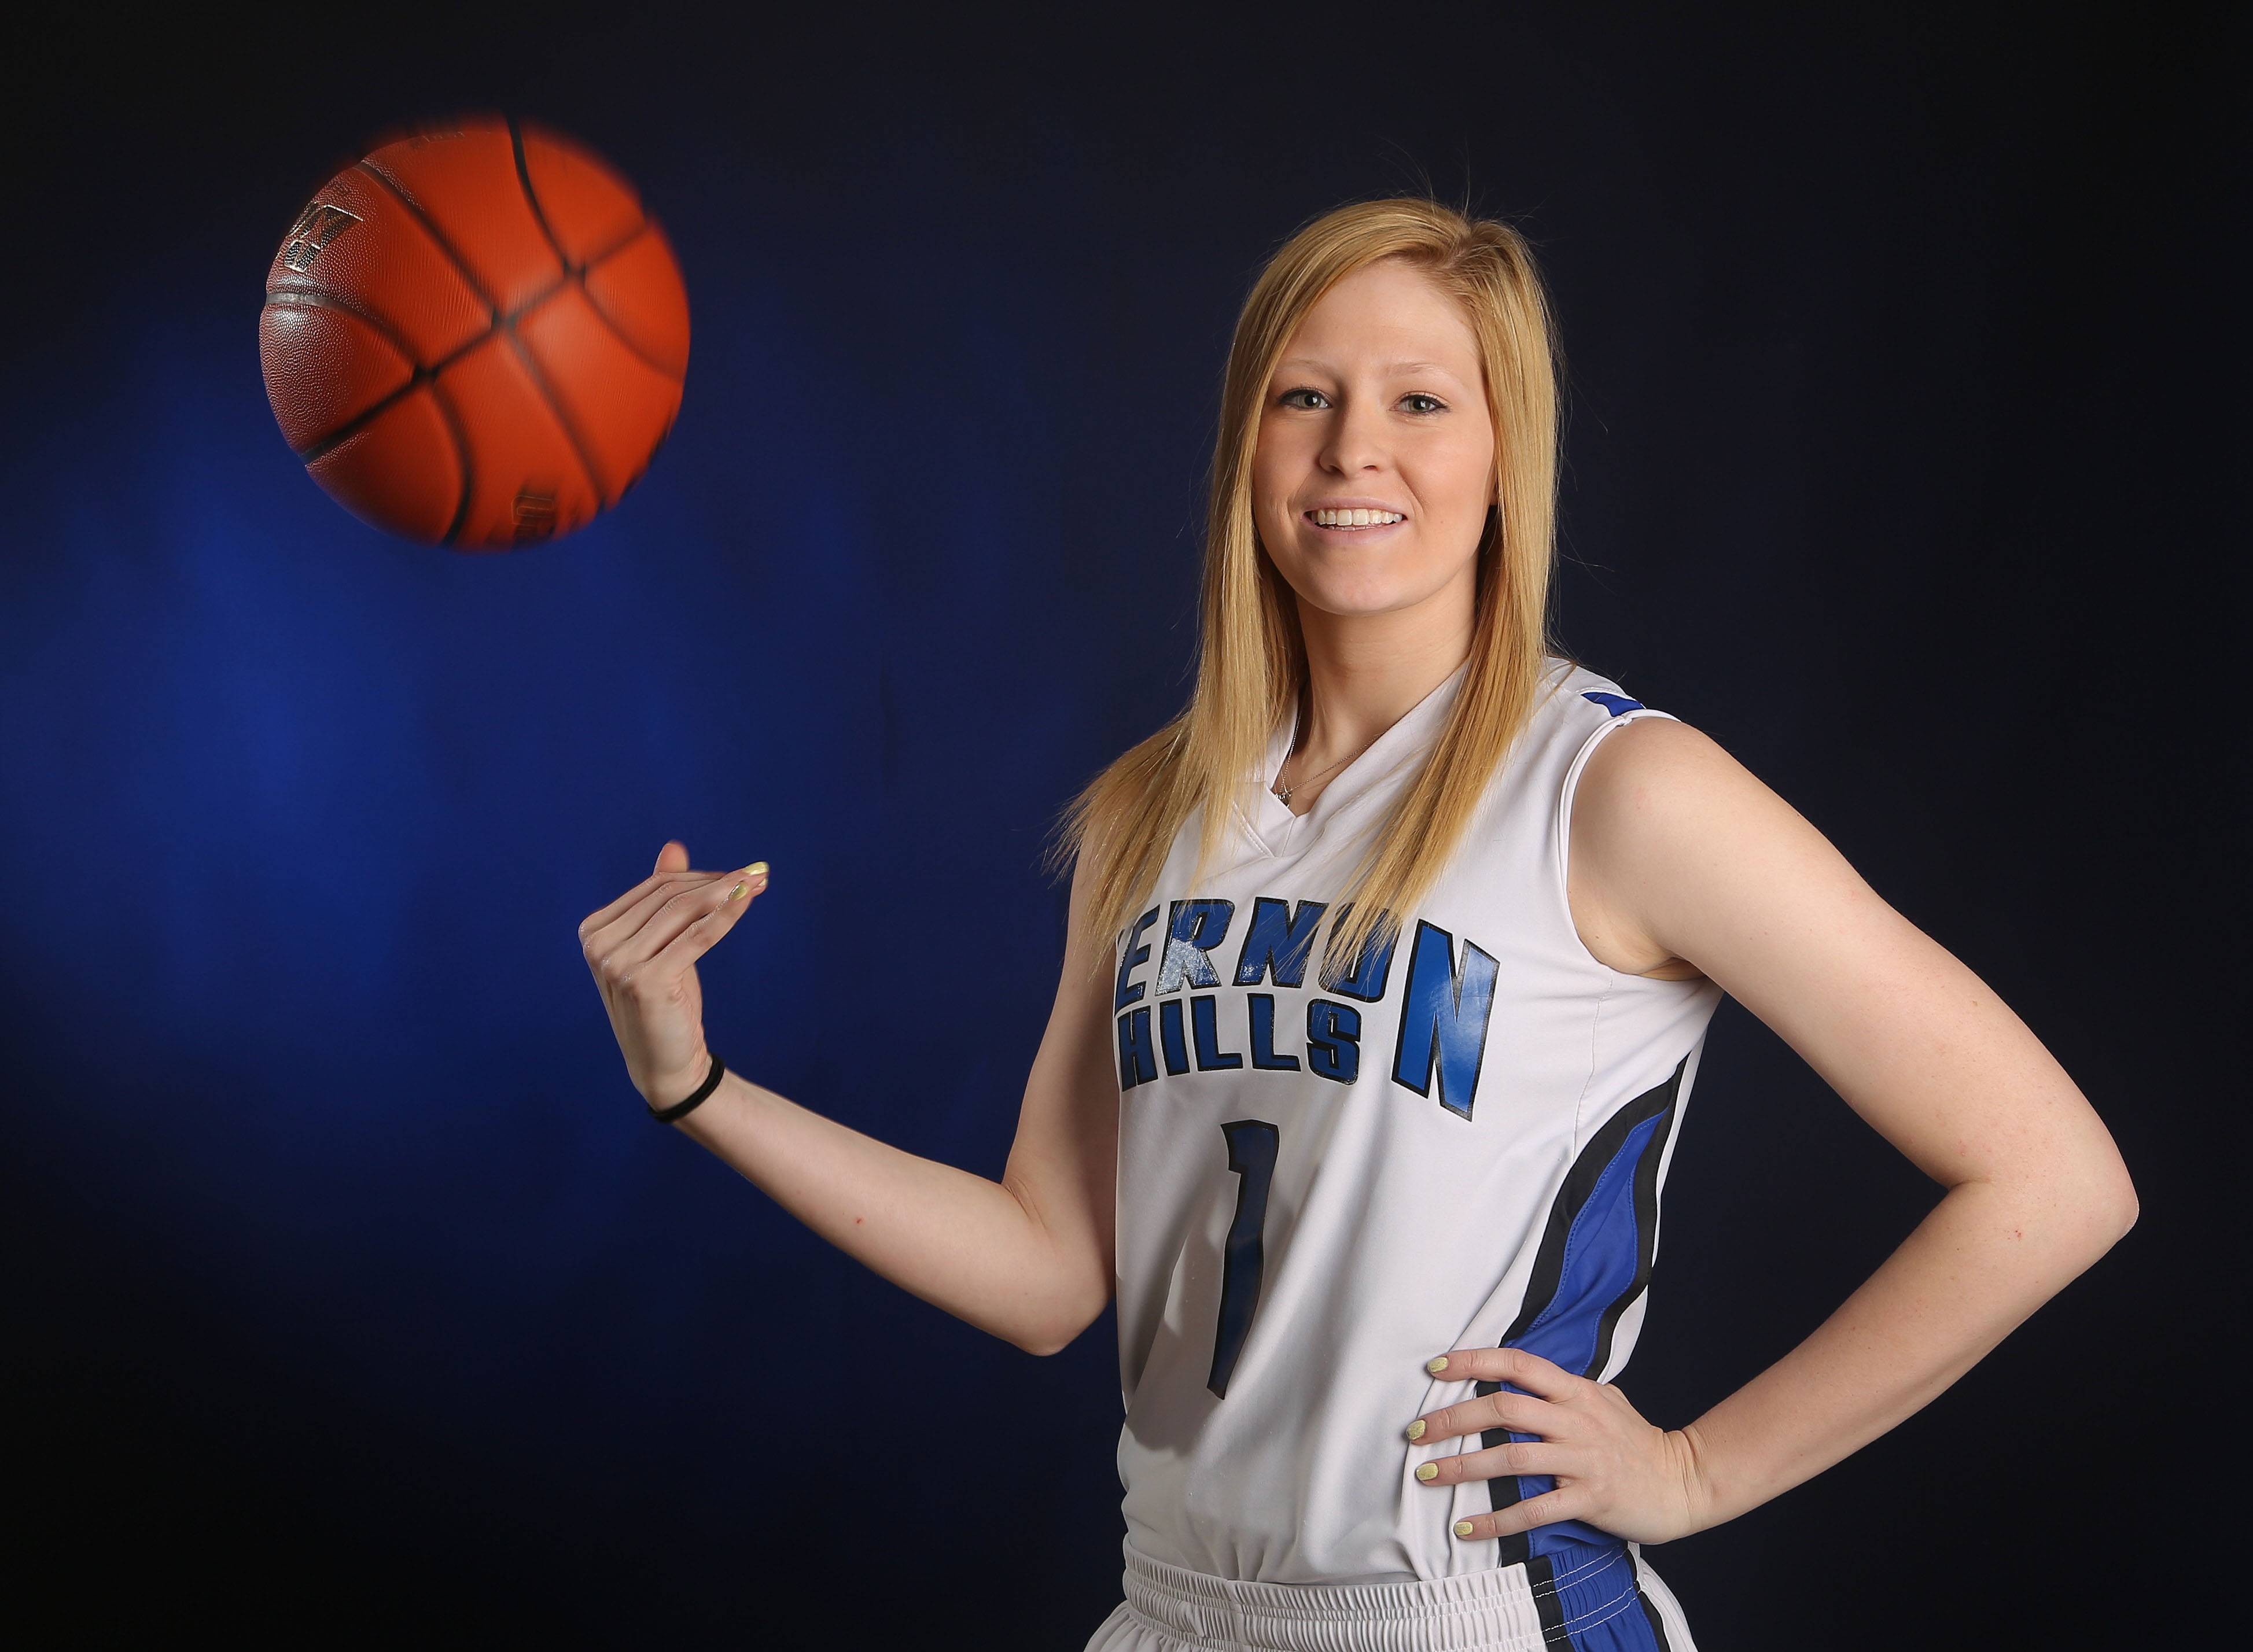 Smith lives strong, plays strong at Vernon Hills